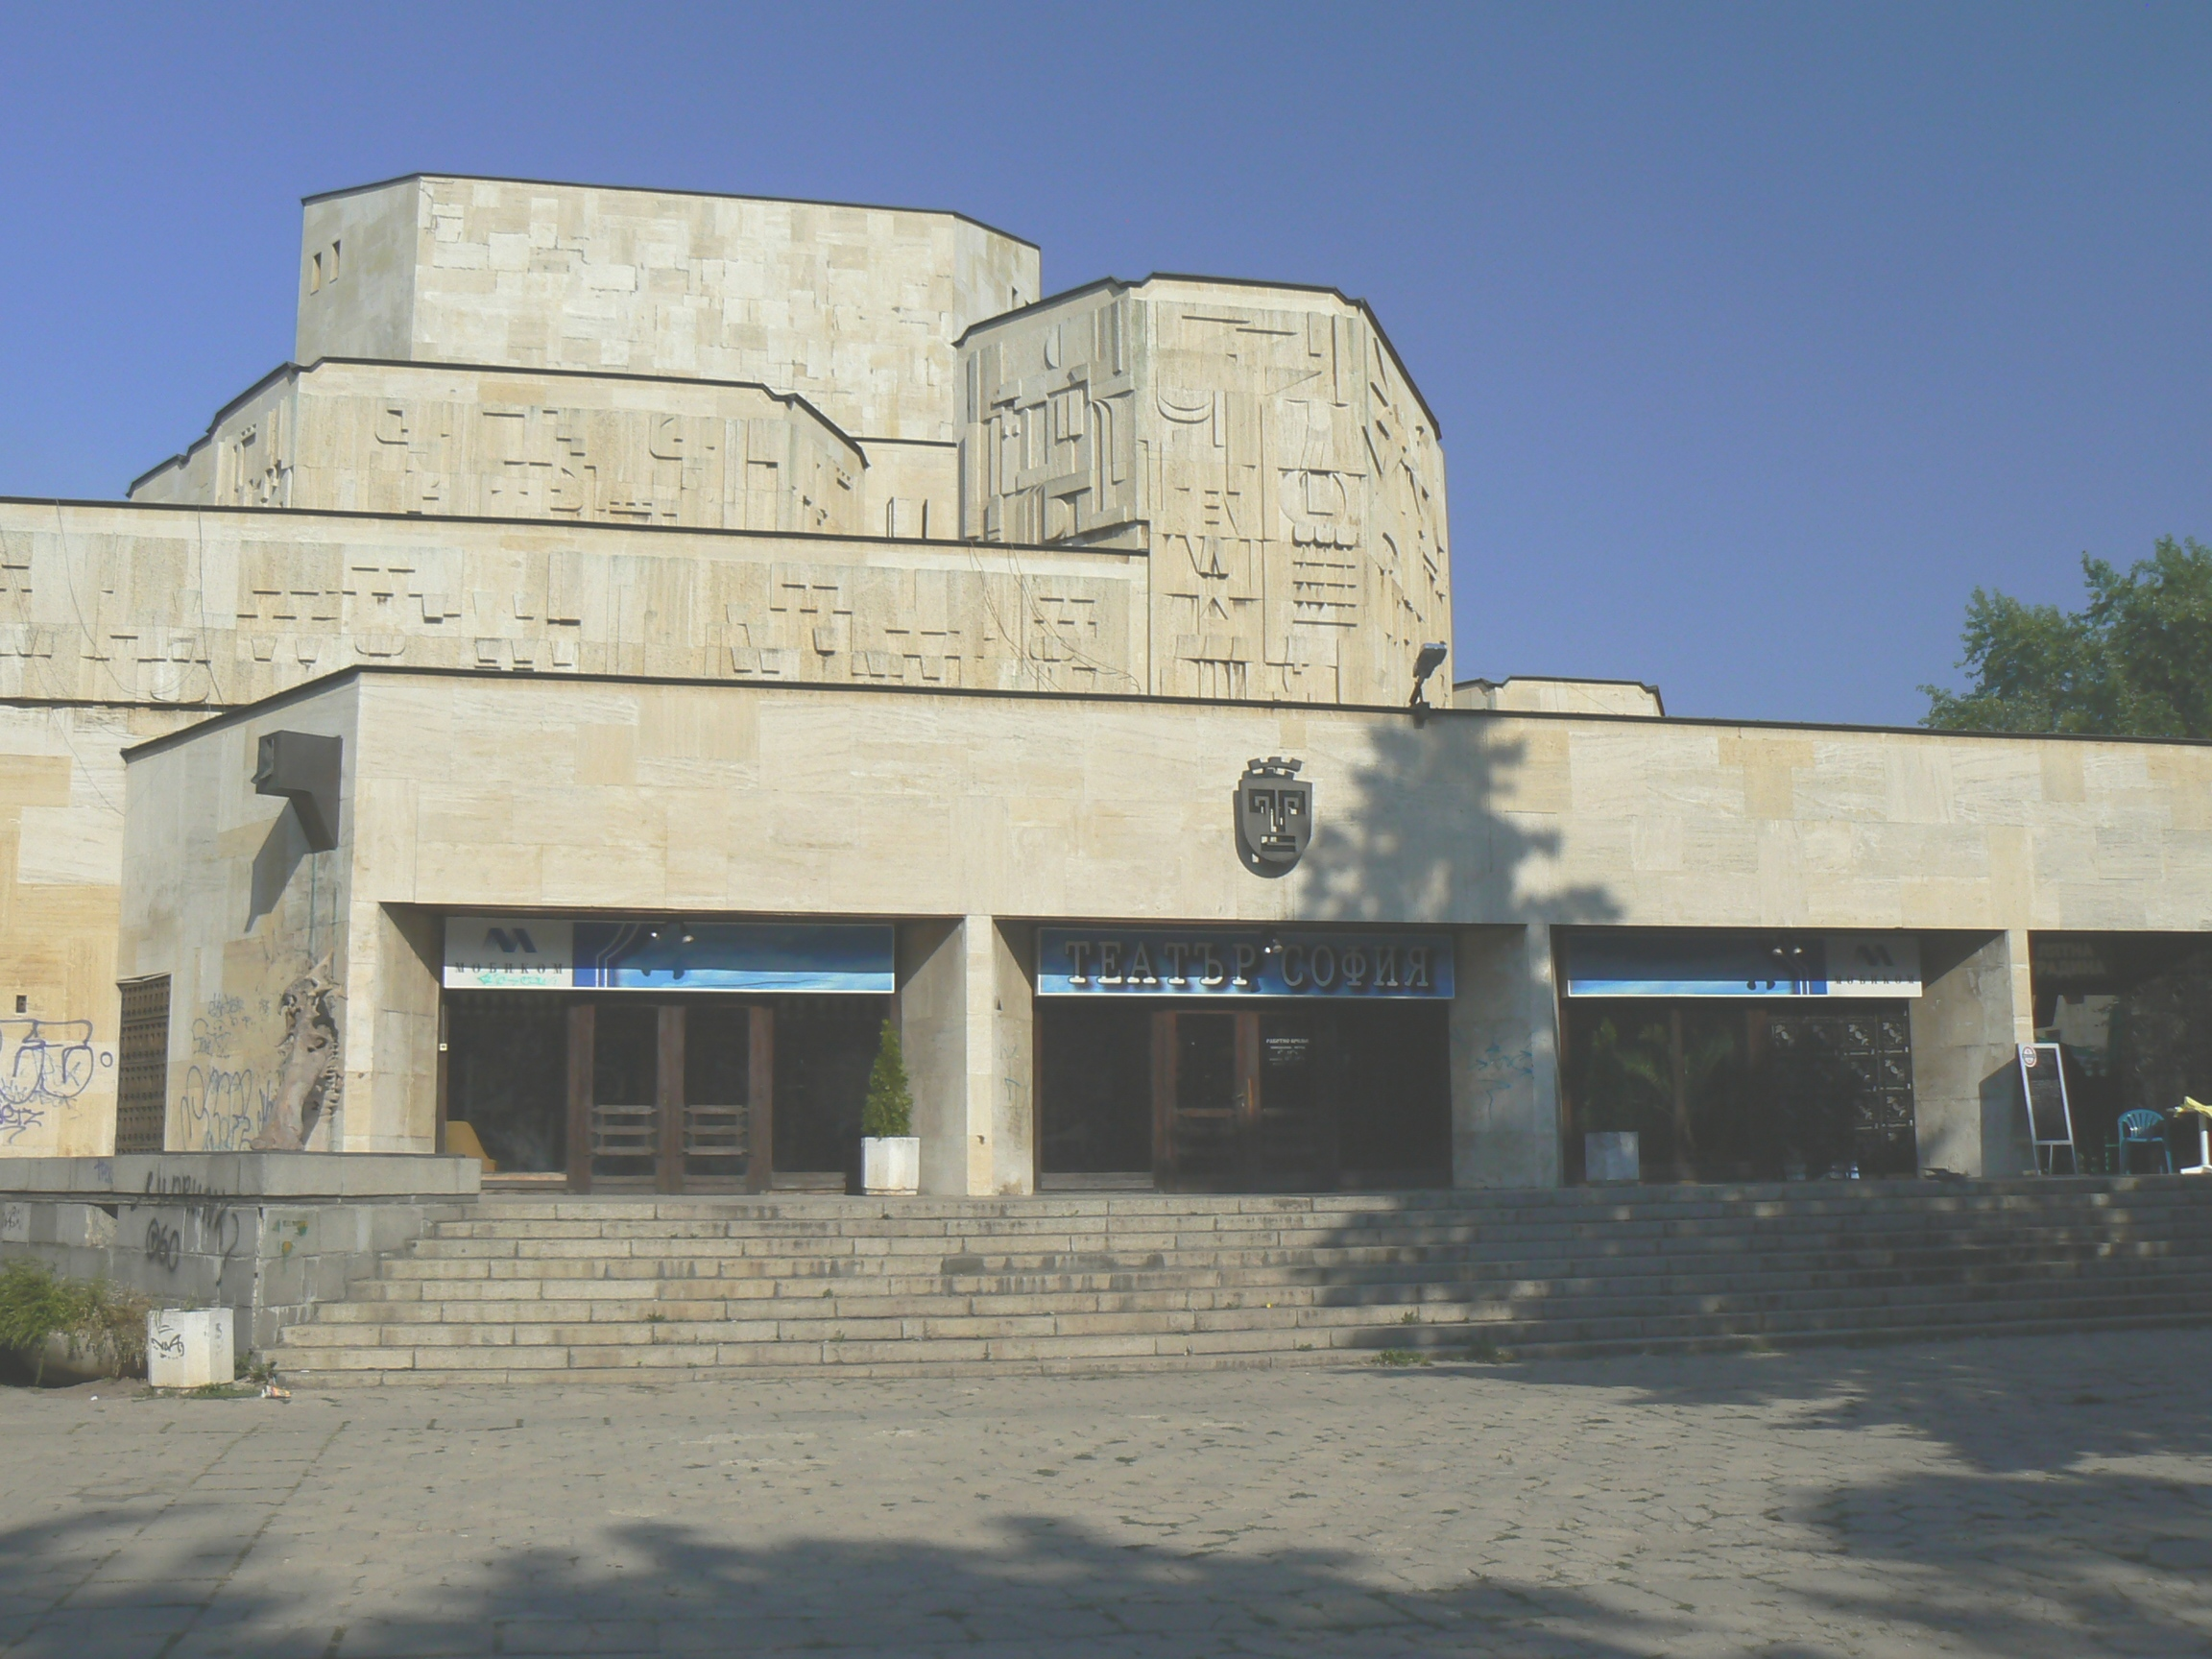 Sofia - Attraction Sofia Theatre - Picture 1